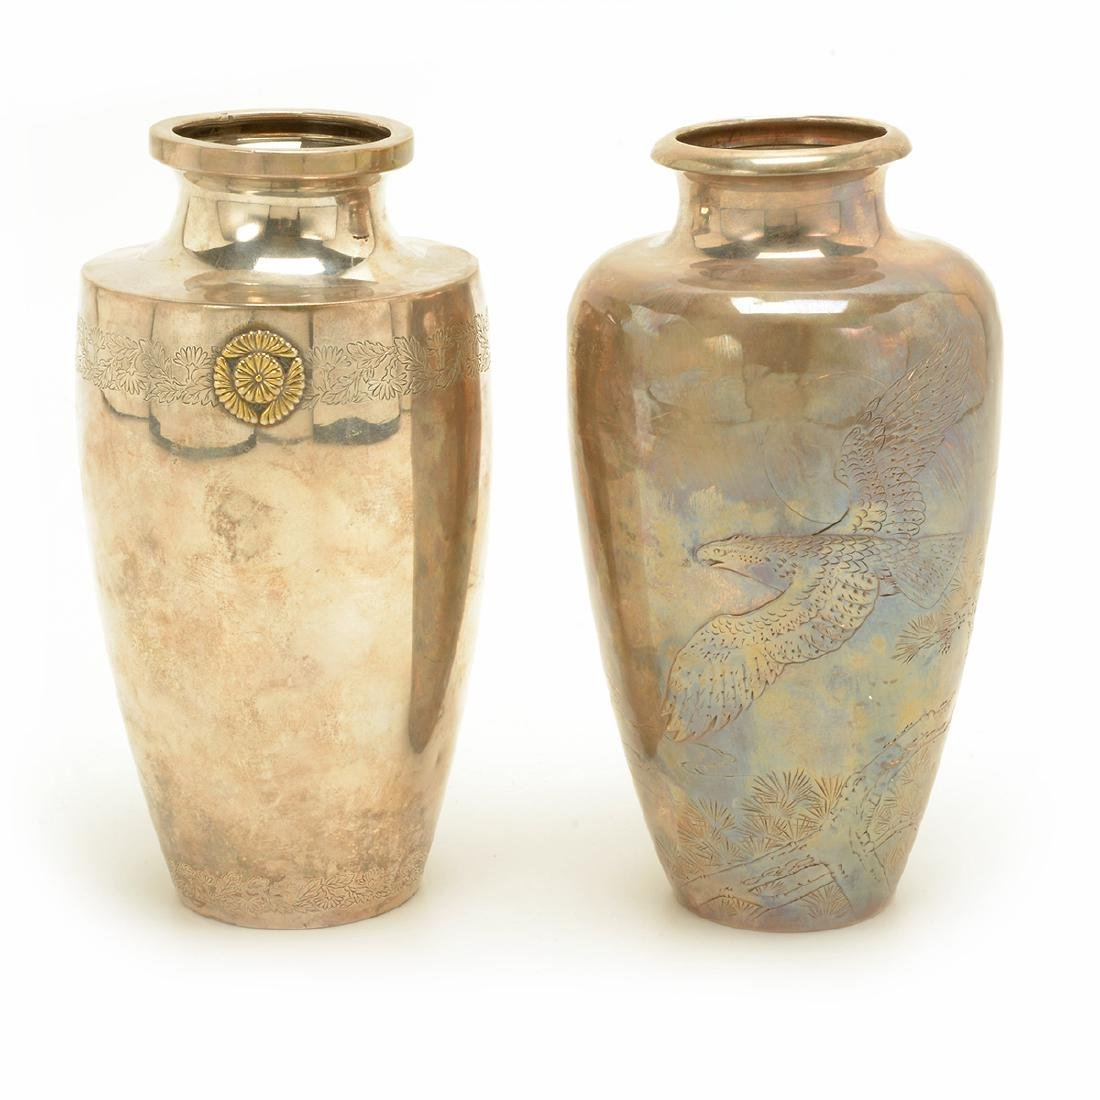 Two Baluster Silver Vases, Meiji Period